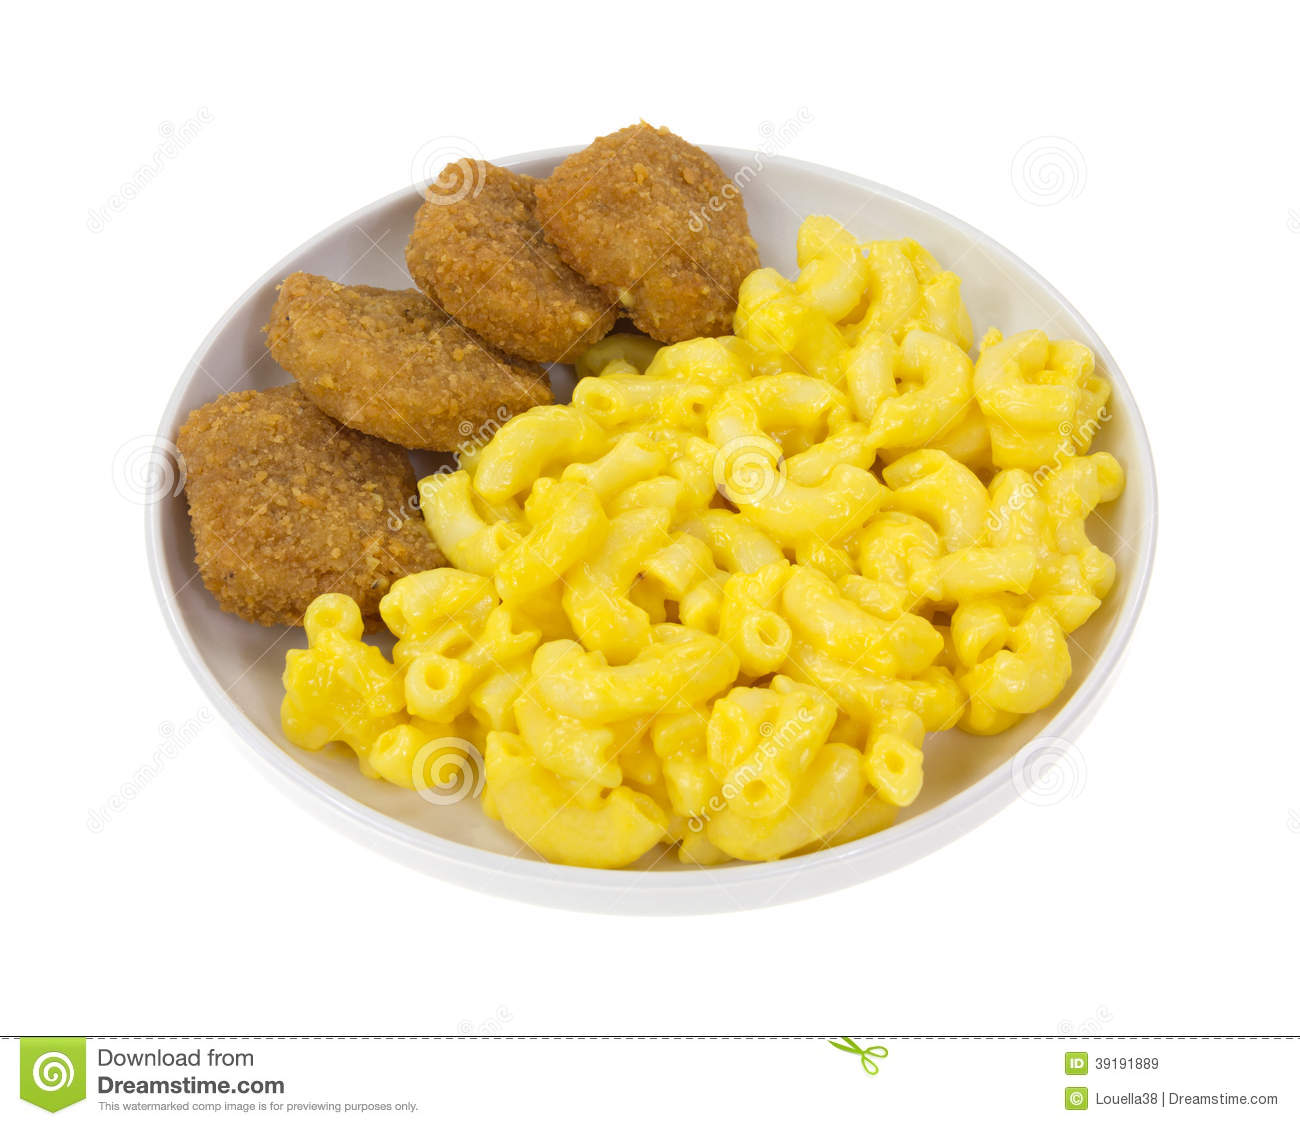 Chicken Nuggets Macaroni Cheese Stock Photo - Image: 39191889